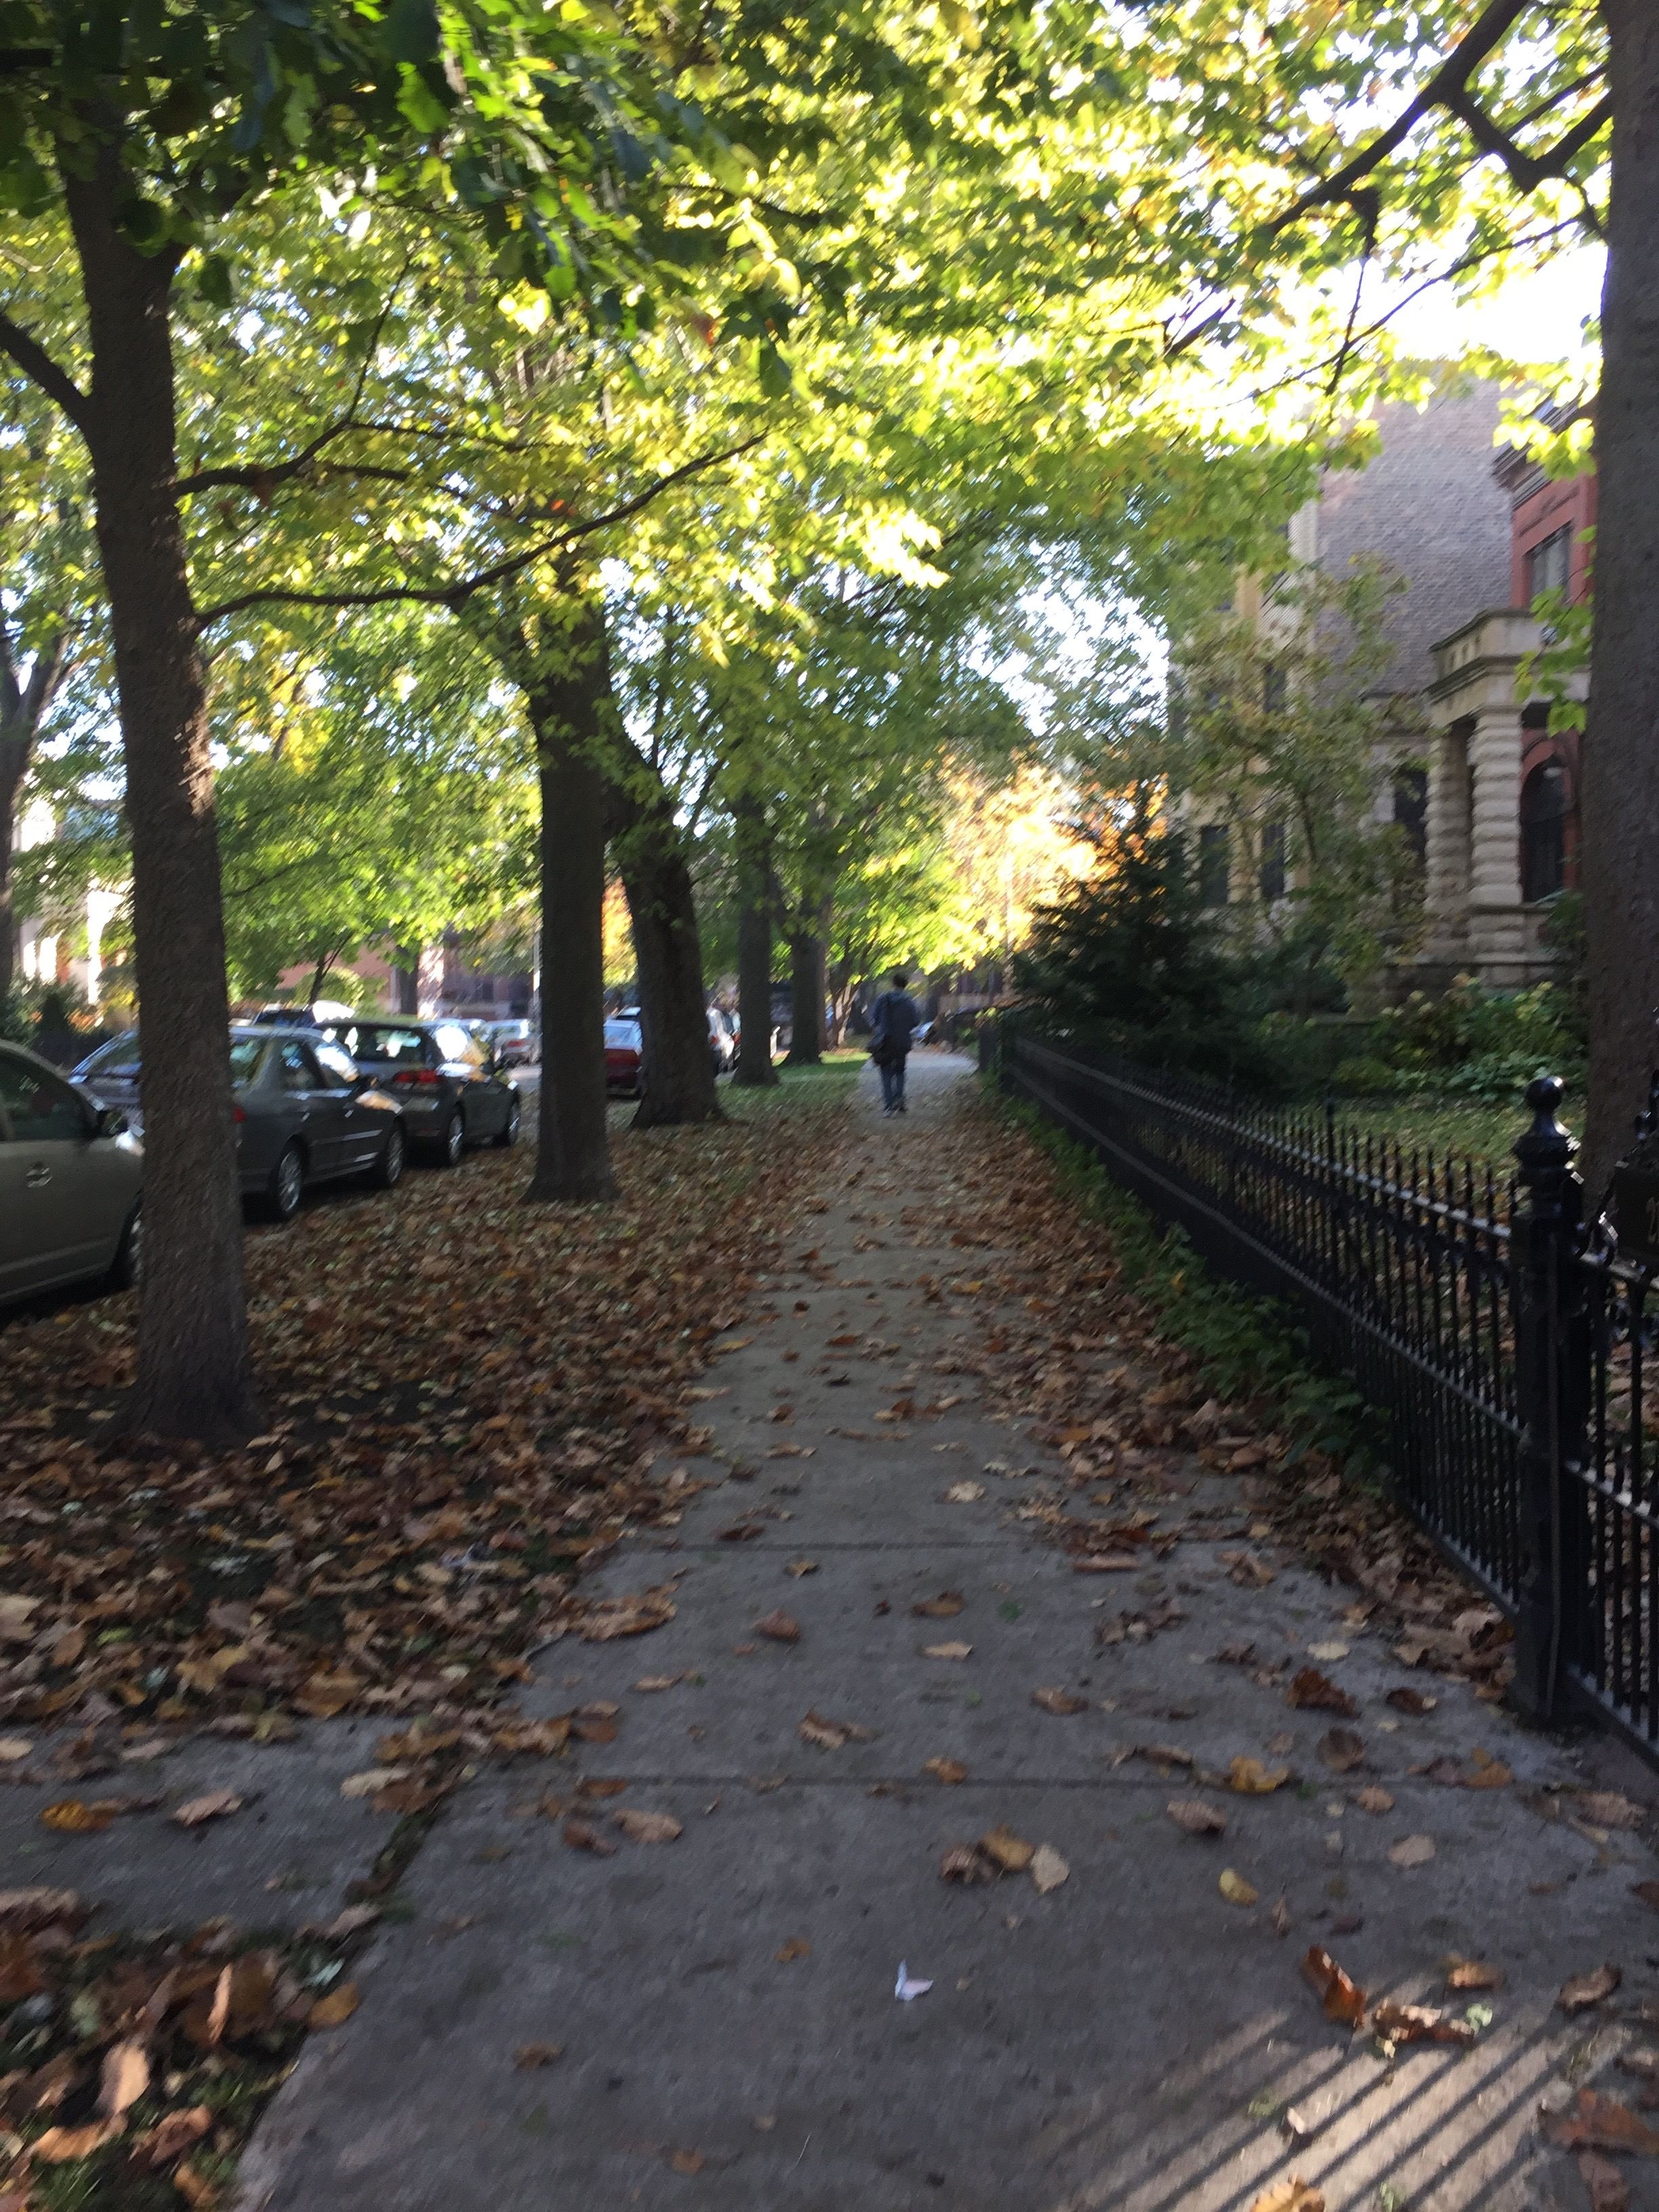 Streets of Chicago, near Humboldt Park.